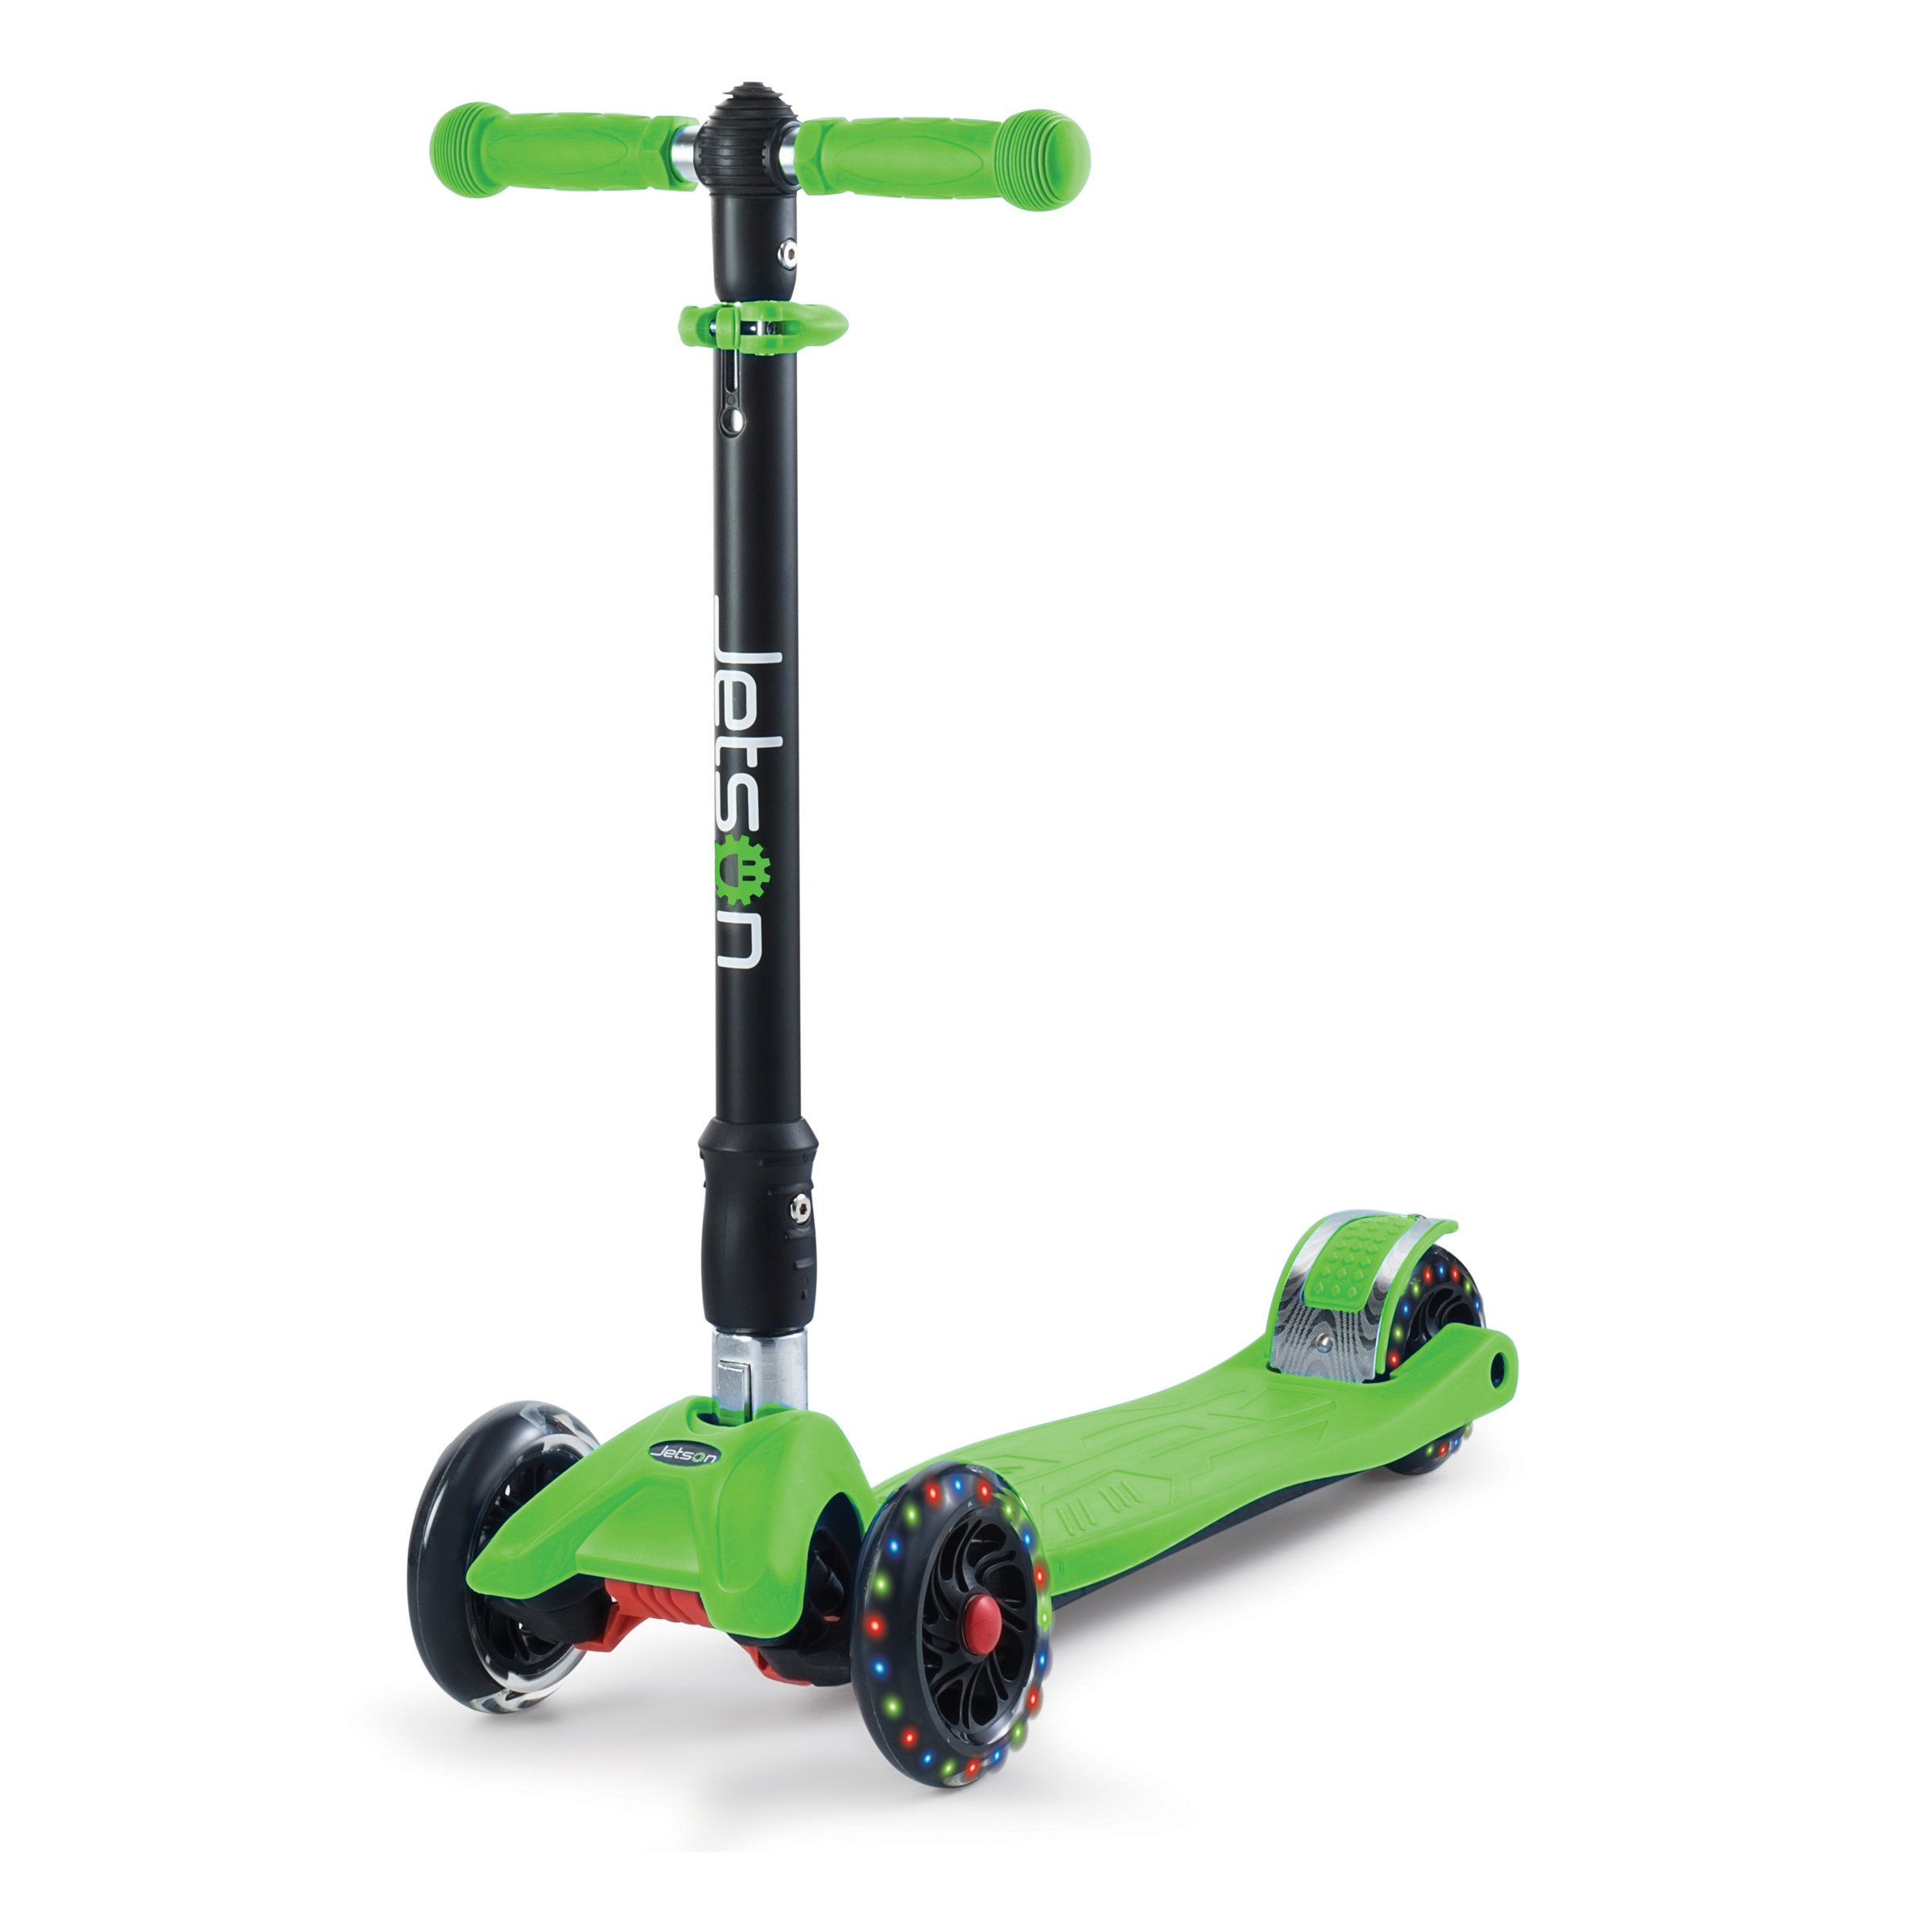 Jetson Electric Bike Twin Folding 3-Wheel Kick Scooter with Light-Up Wheels, Lean-to-Steer Design and Height Adjustable Handlebar, for Kids 5 and Up - Green by Jetson Electric Bike